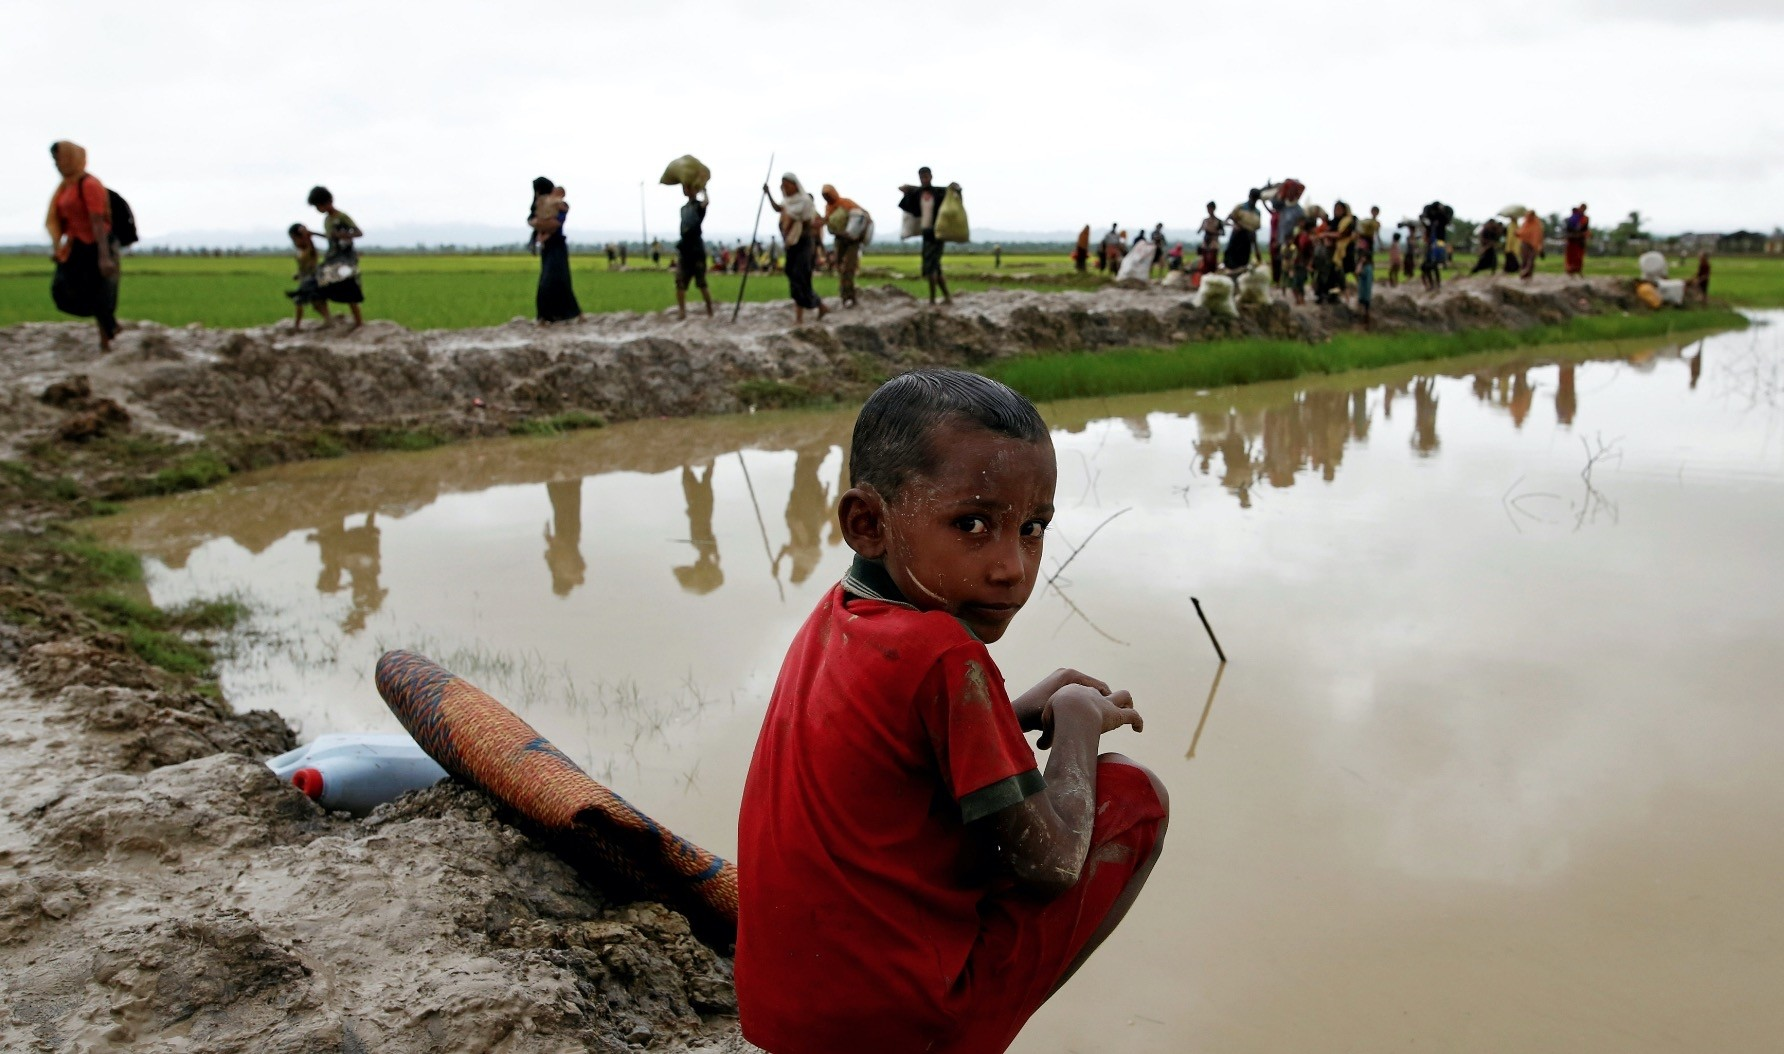 A Rohingya refugee boy reacts to the camera as he sits in mud after travelling over the Bangladesh-Myanmar border in Teknaf, Bangladesh, Sept. 1.